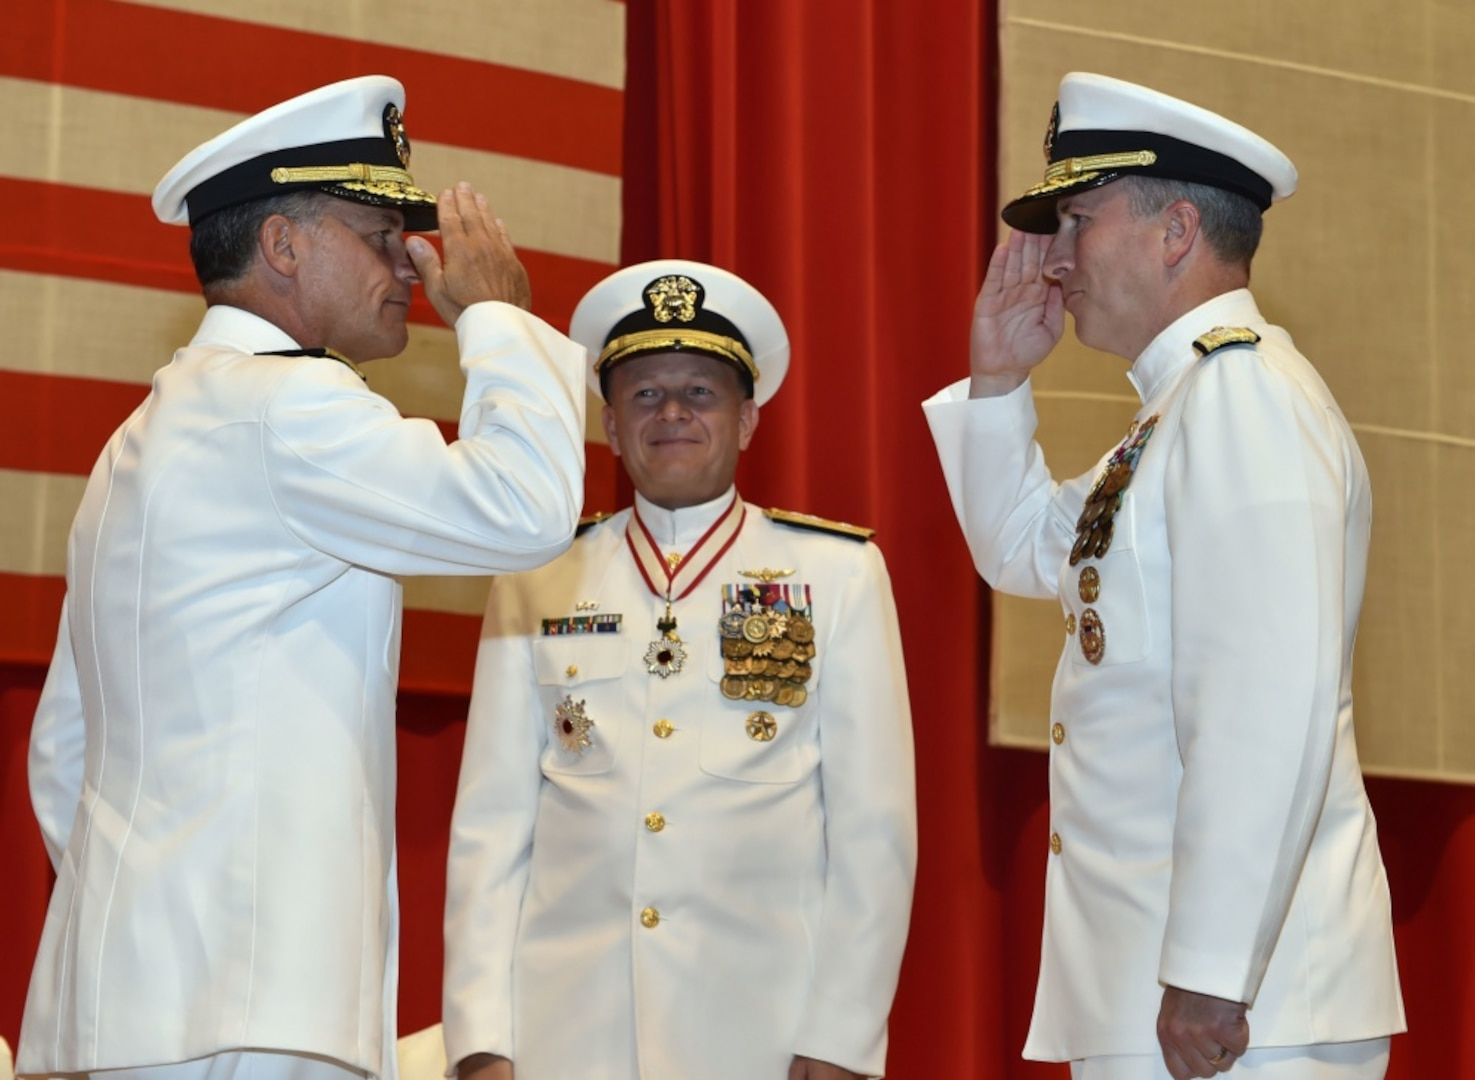 USS John S. McCain Sailors Honored for Damage Control Efforts following 2017 Collision